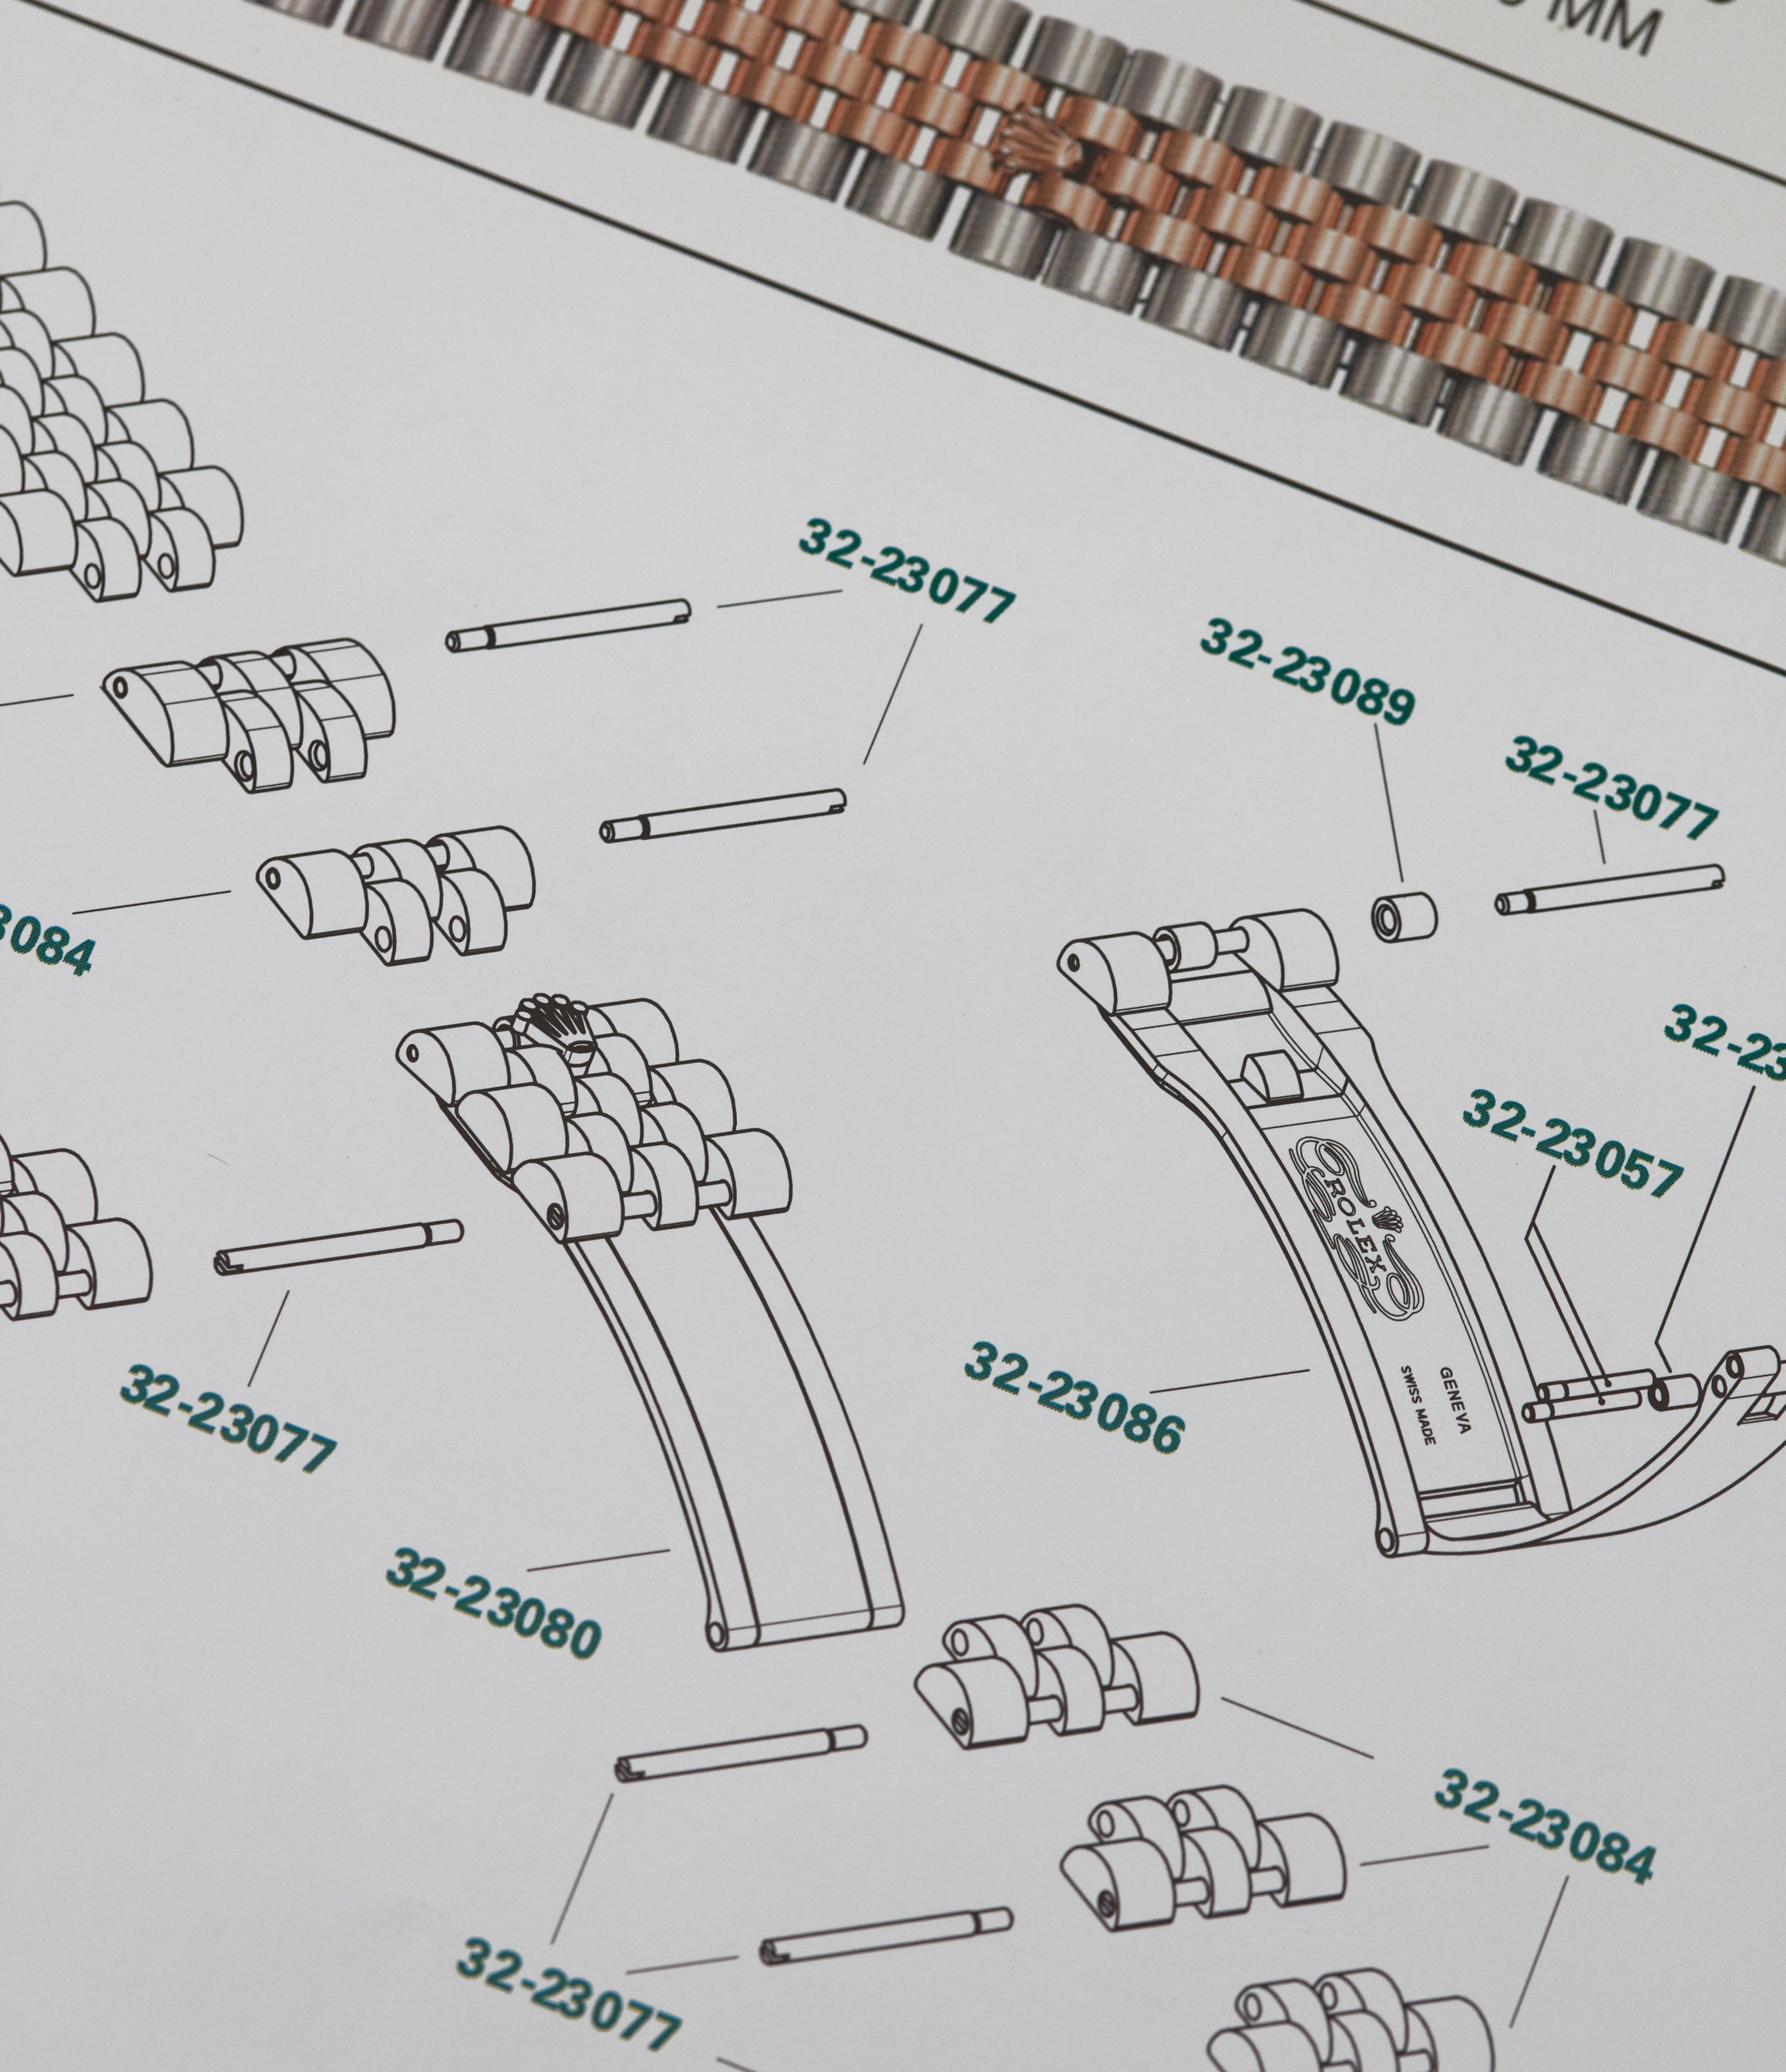 Rolex catalogues showing the construction of an Oyster bracelet for A Collected Man London